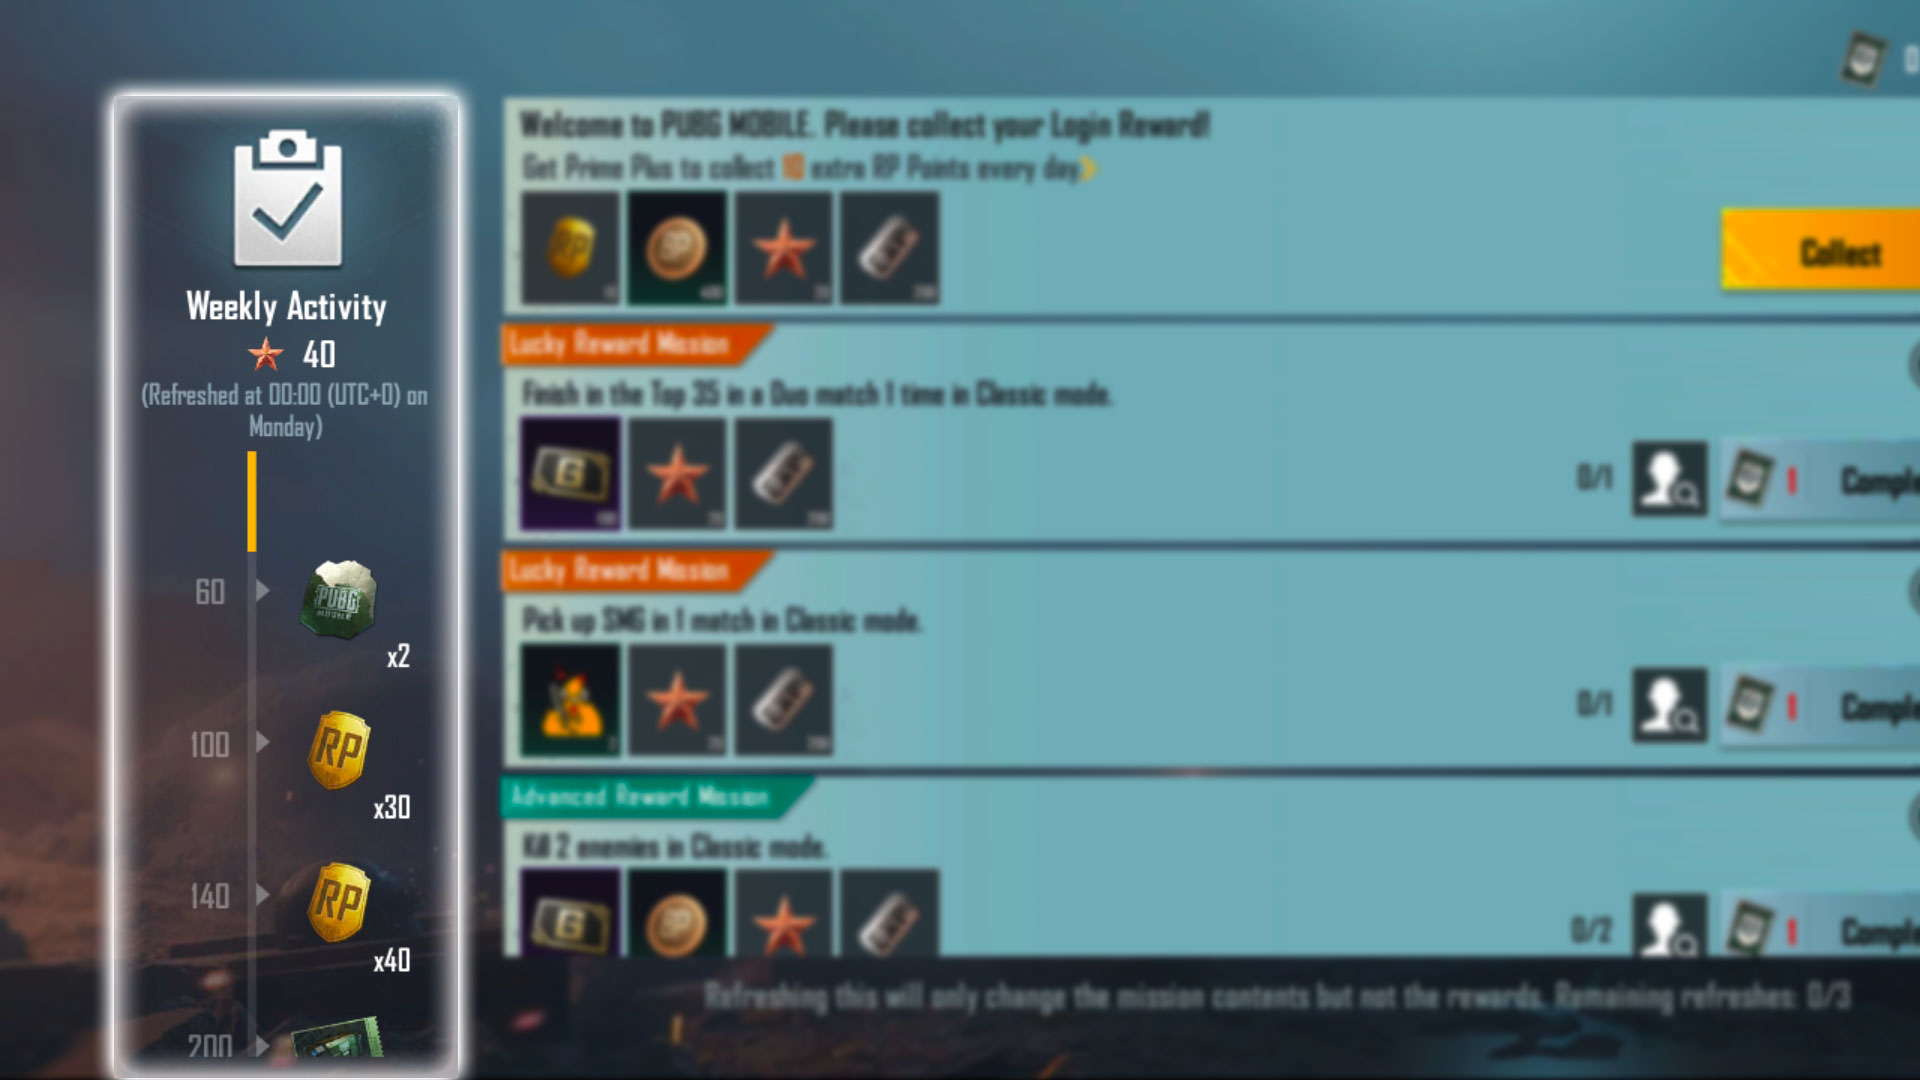 PUBG Mobile Season 17 weekly activity changes